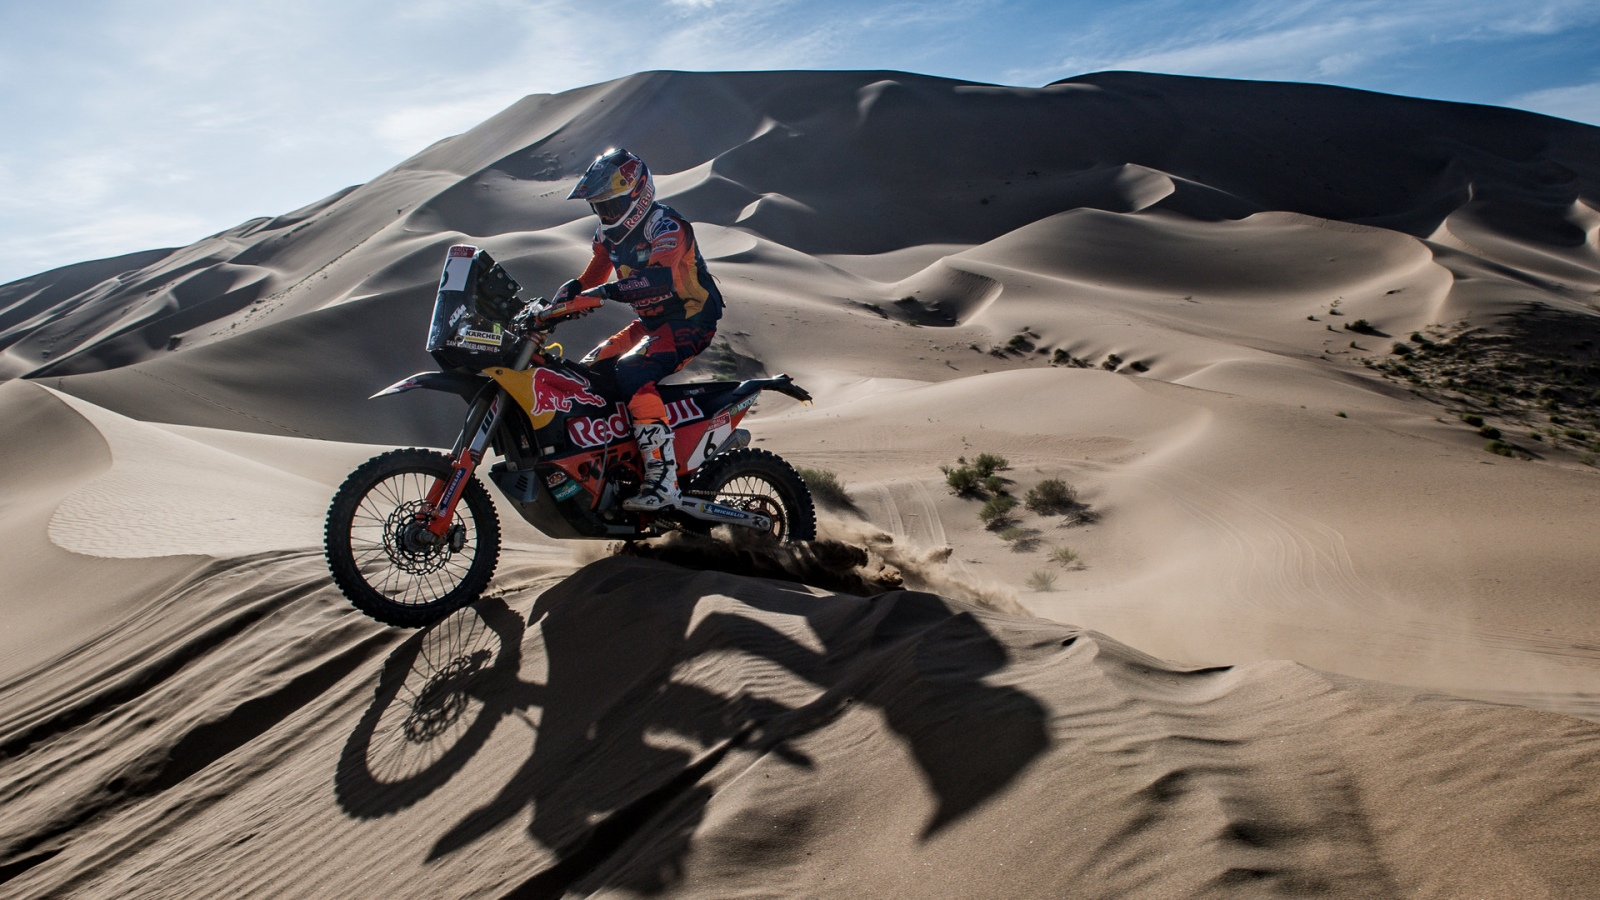 Sam Sunderland gana el Silk Way 2019 y es más líder del Mundial de Rallies Cross-Country